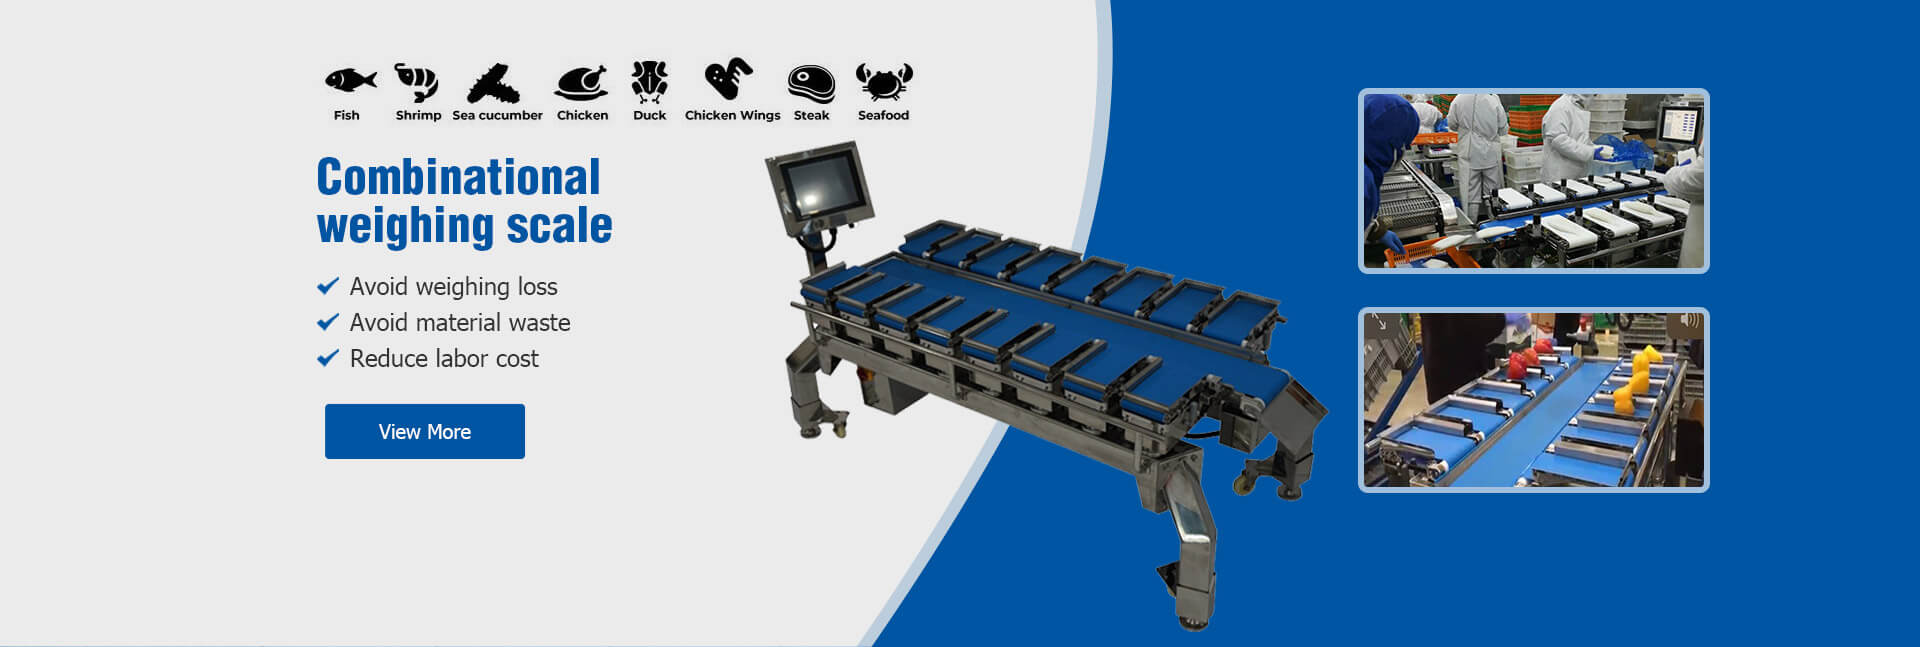 Combine Weighing Scale